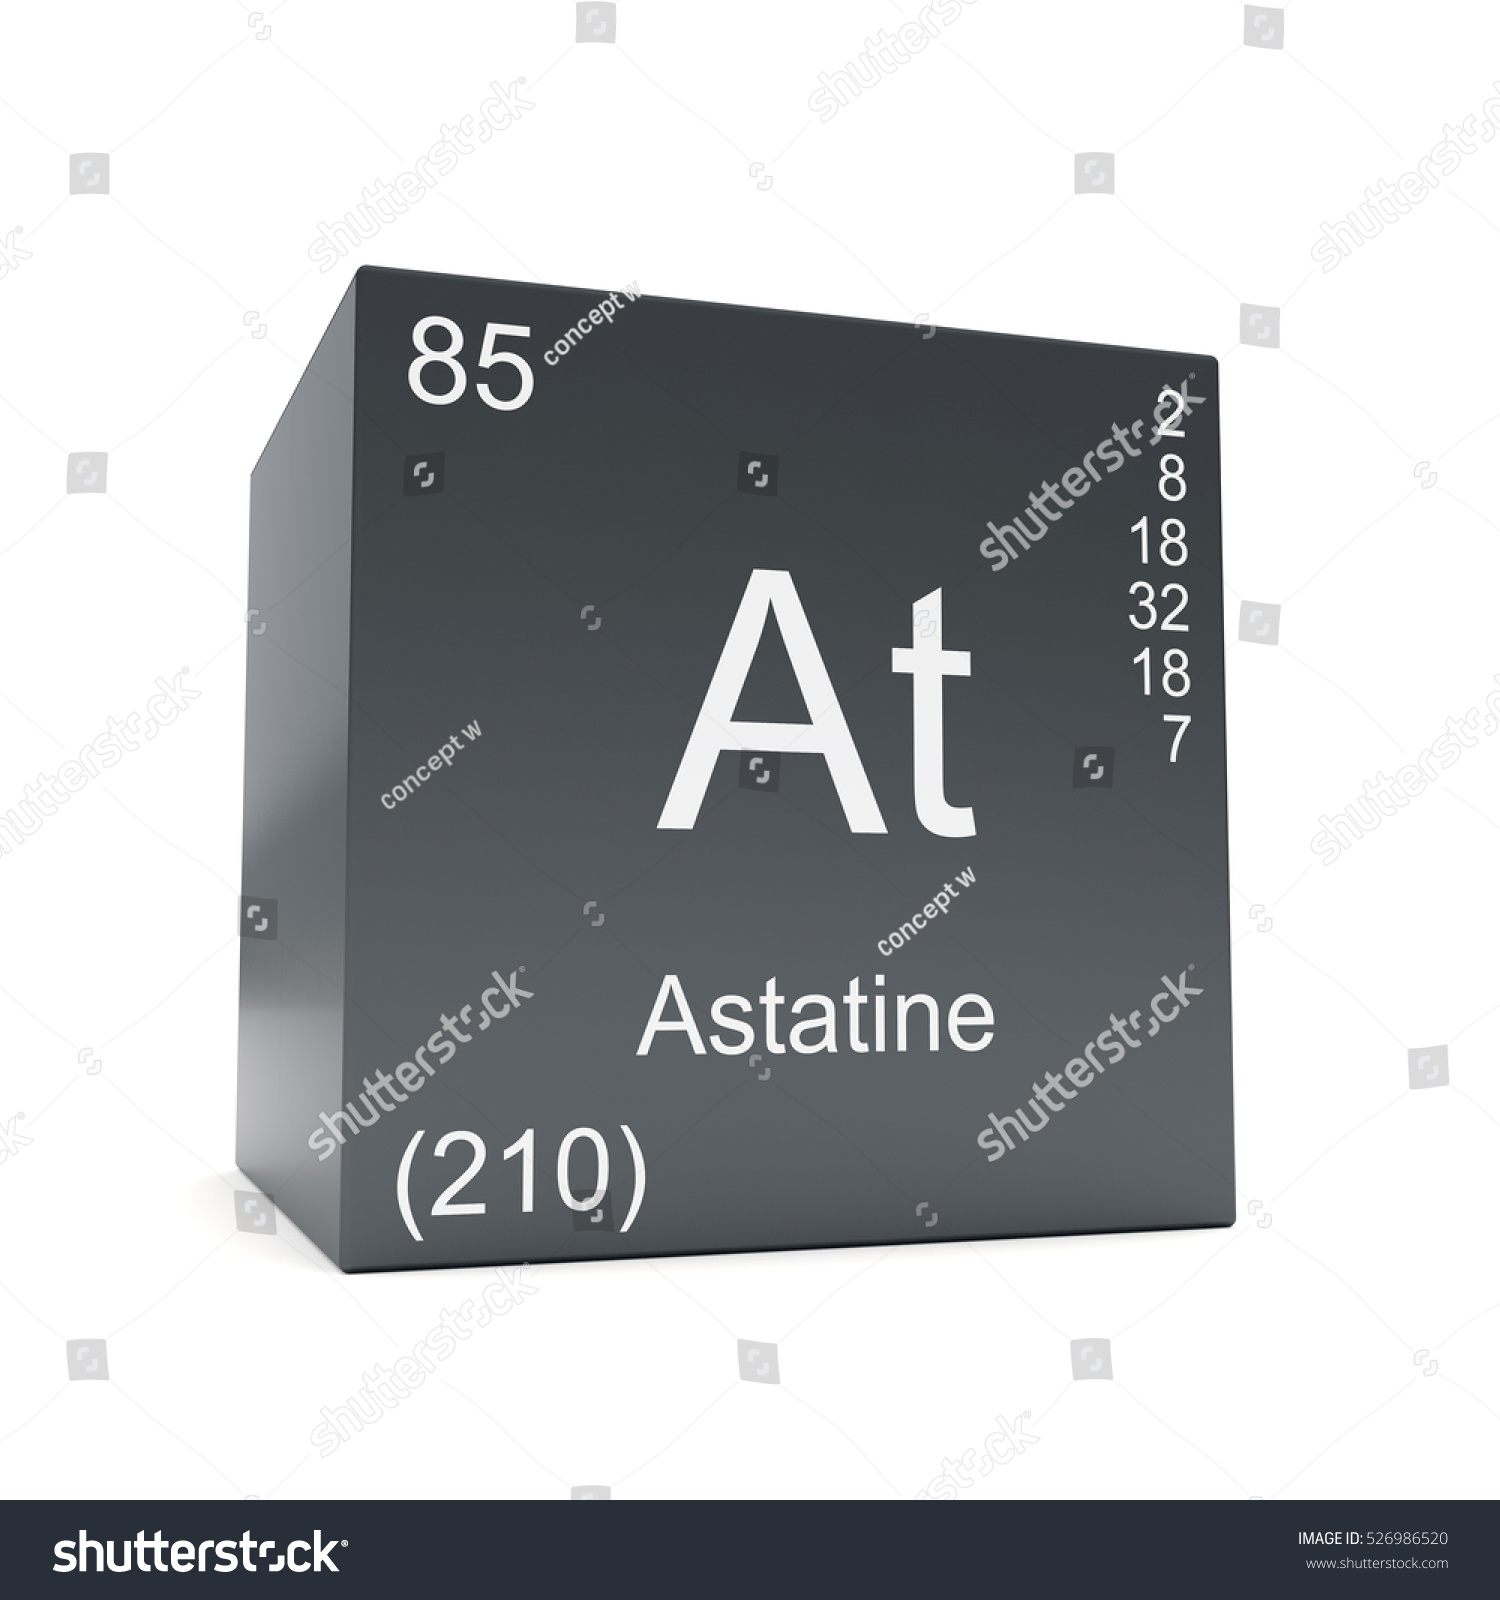 Astatine chemical element symbol periodic table stock illustration astatine chemical element symbol from the periodic table displayed on black cube 3d render gamestrikefo Image collections